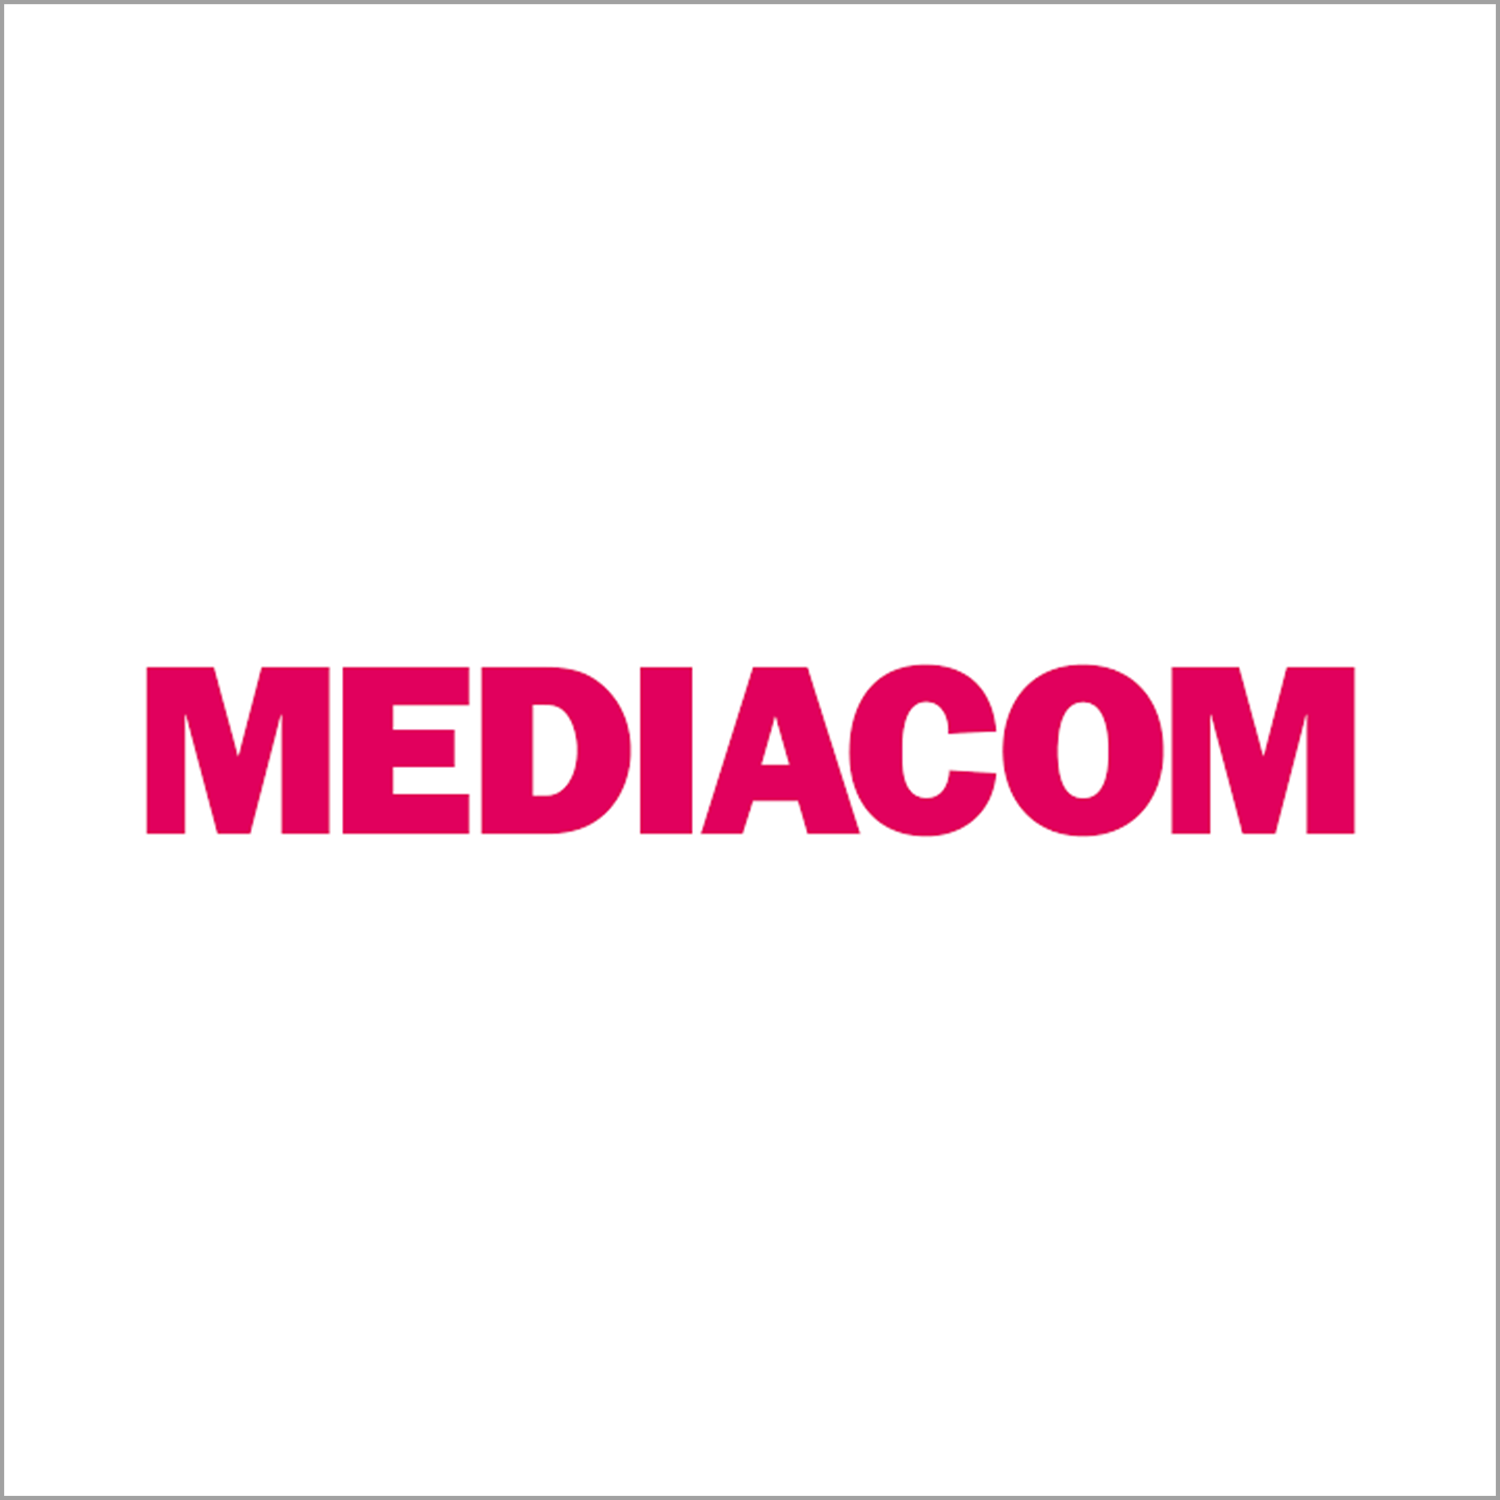 GroupM Mediacom_GS_Members_Logos.png